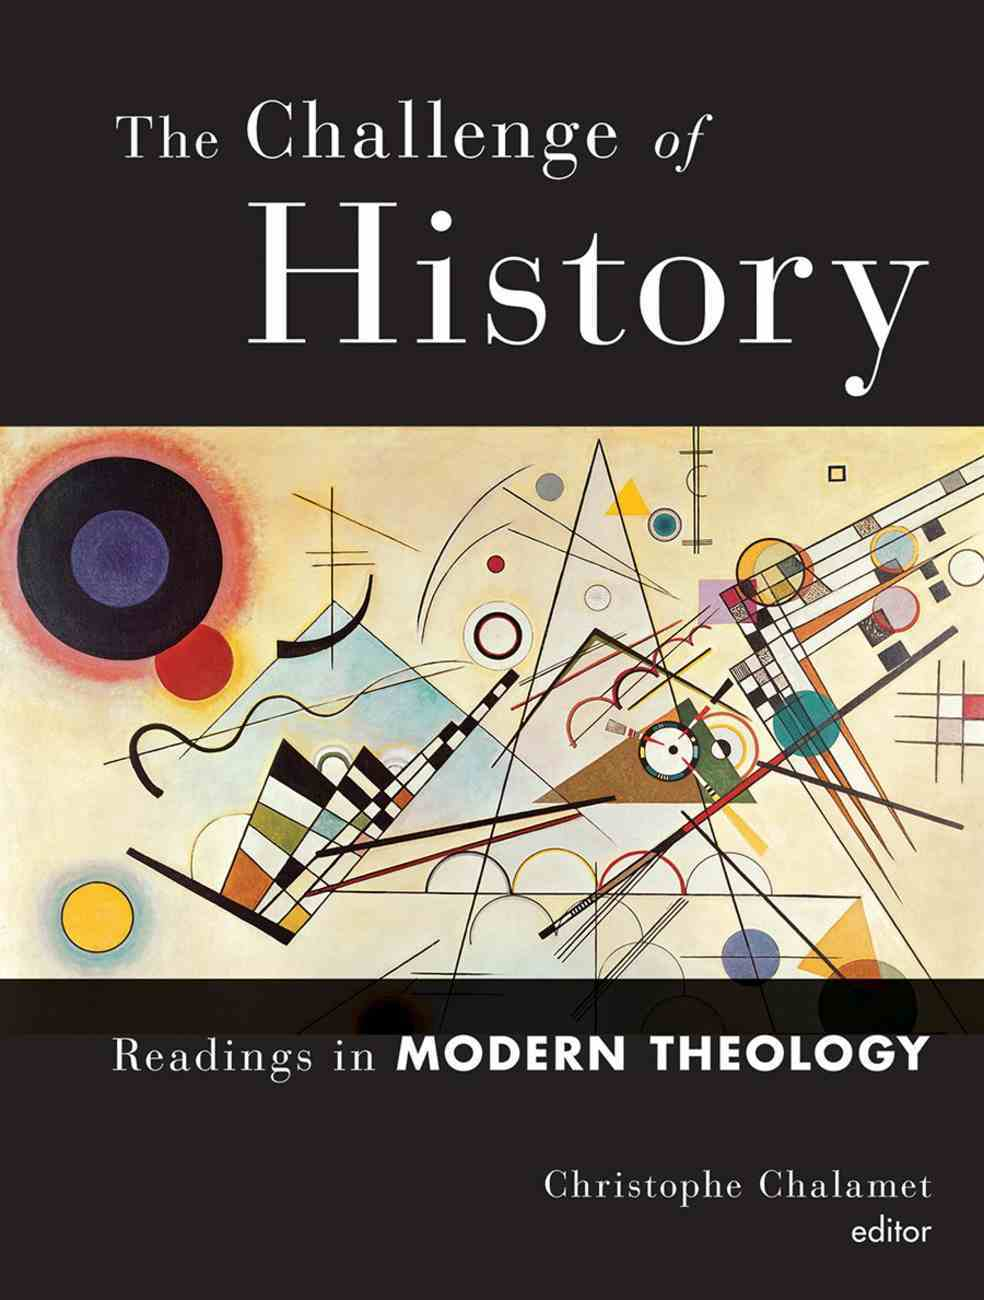 The Challenge of History: Readings in Modern Theology Paperback